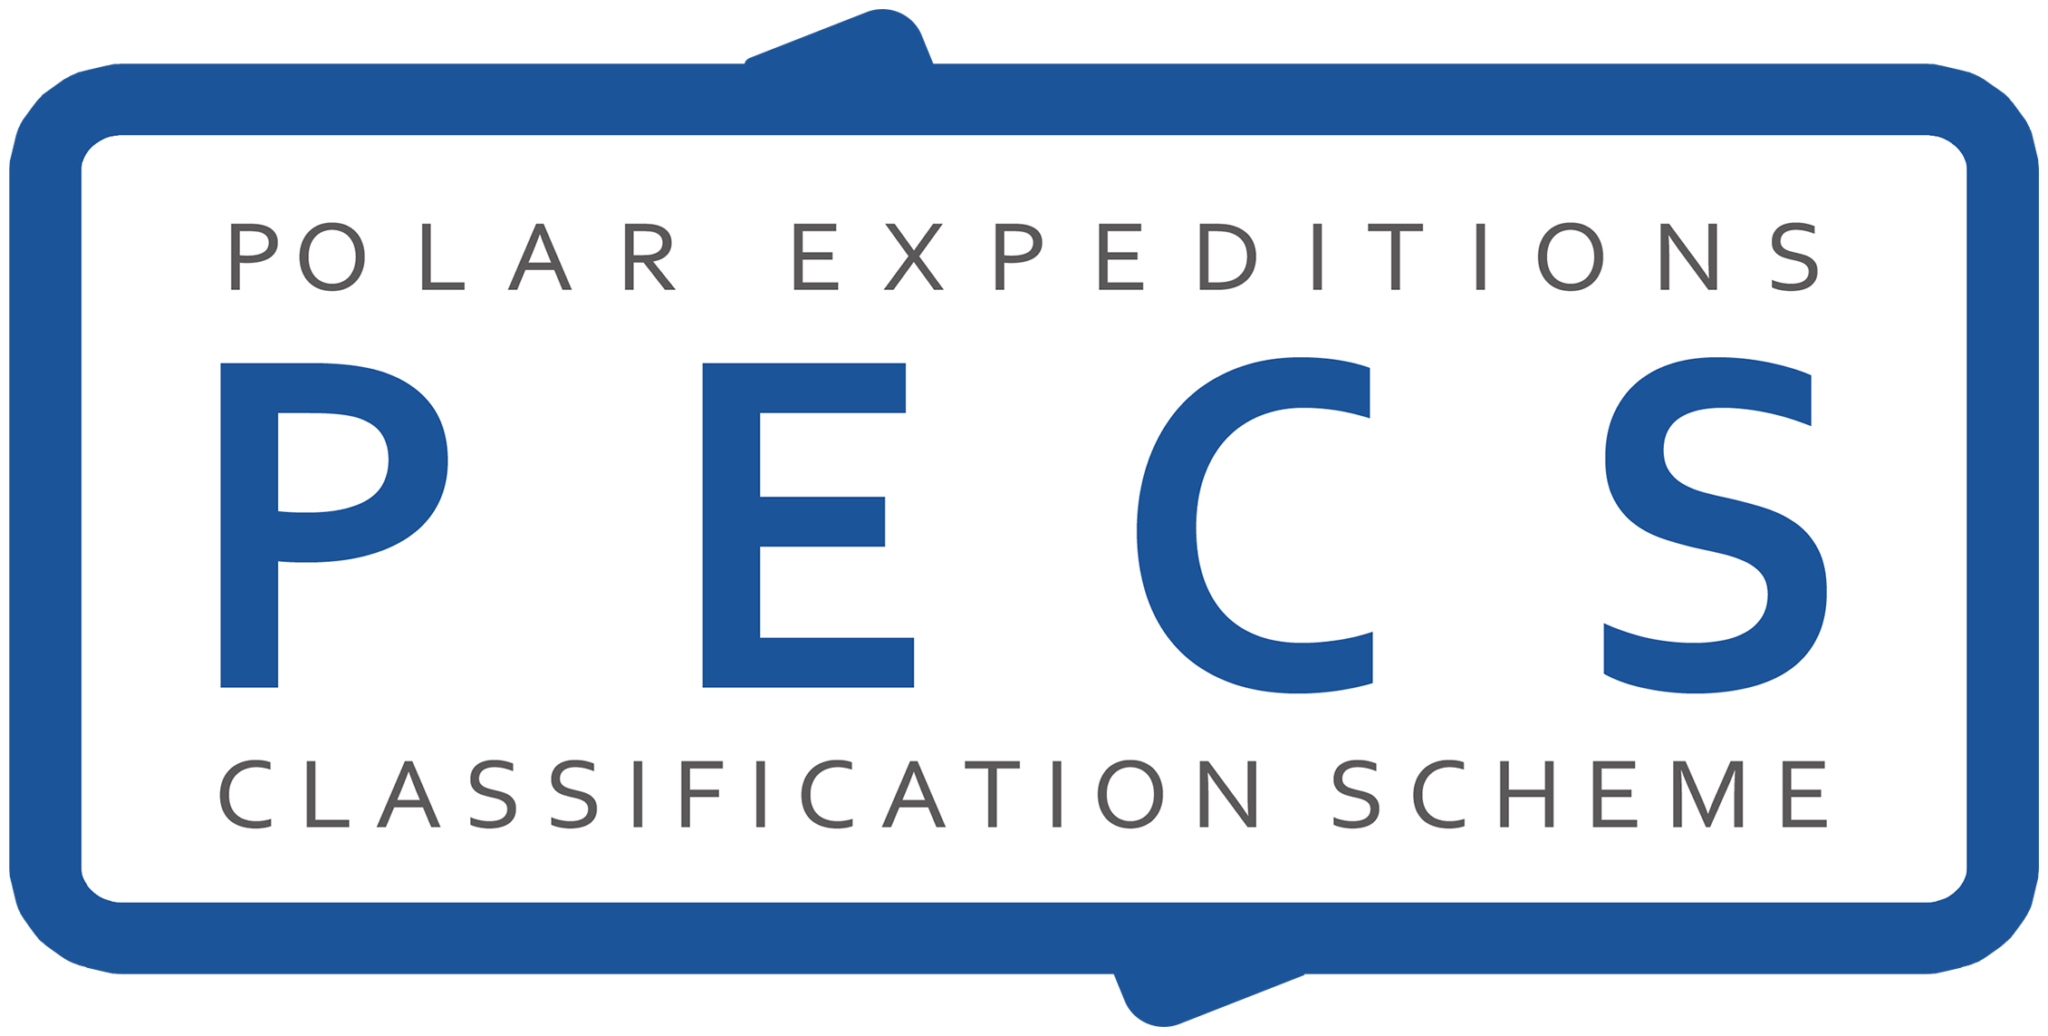 PECS - Polar Expeditions Classification Scheme